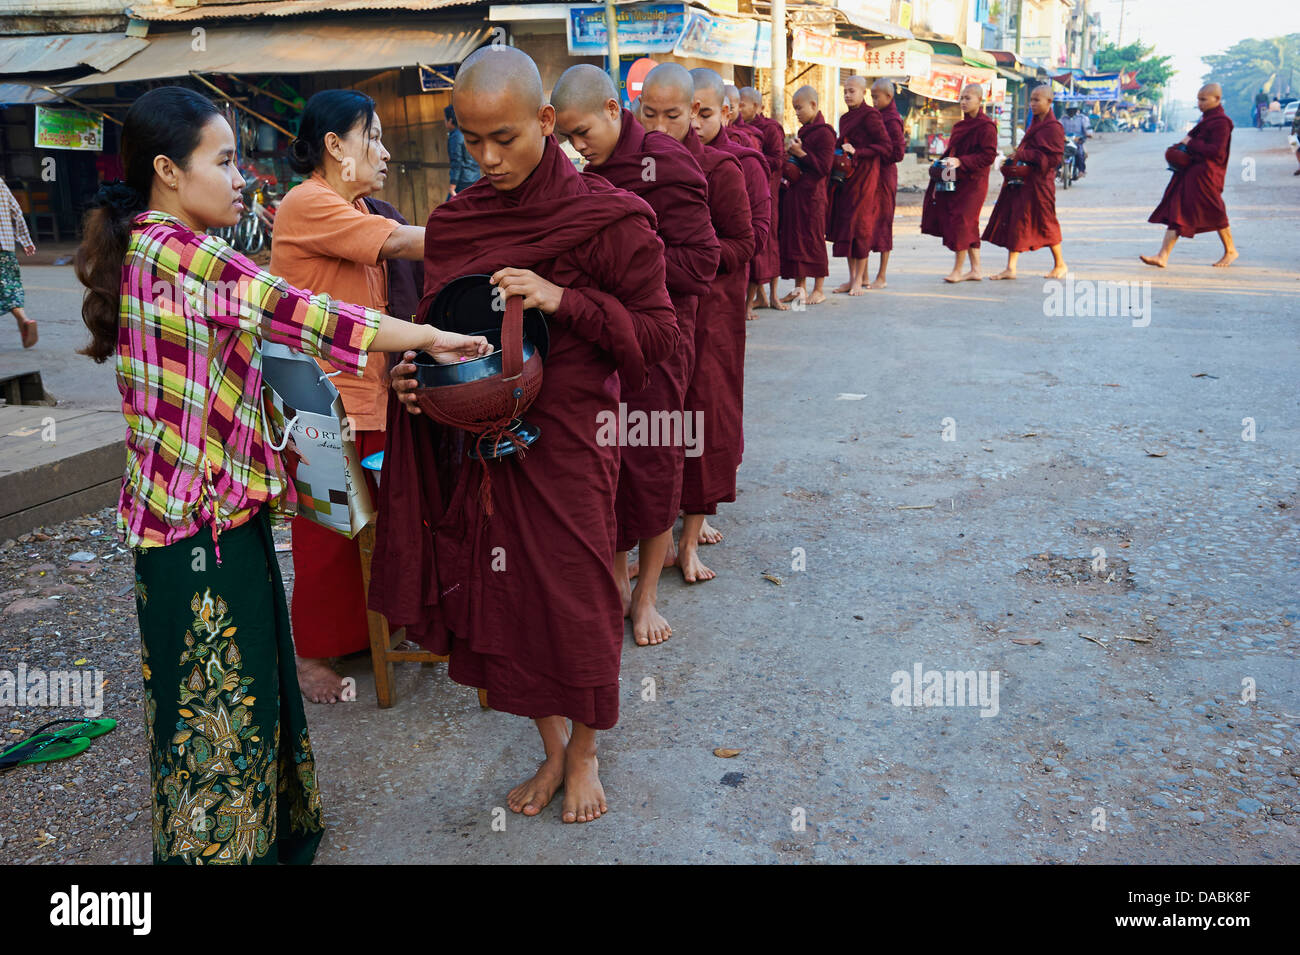 Buddhist monks procession receive offerings, Mawlamyine (Moulmein), Mon State, Myanmar (Burma), Asia - Stock Image